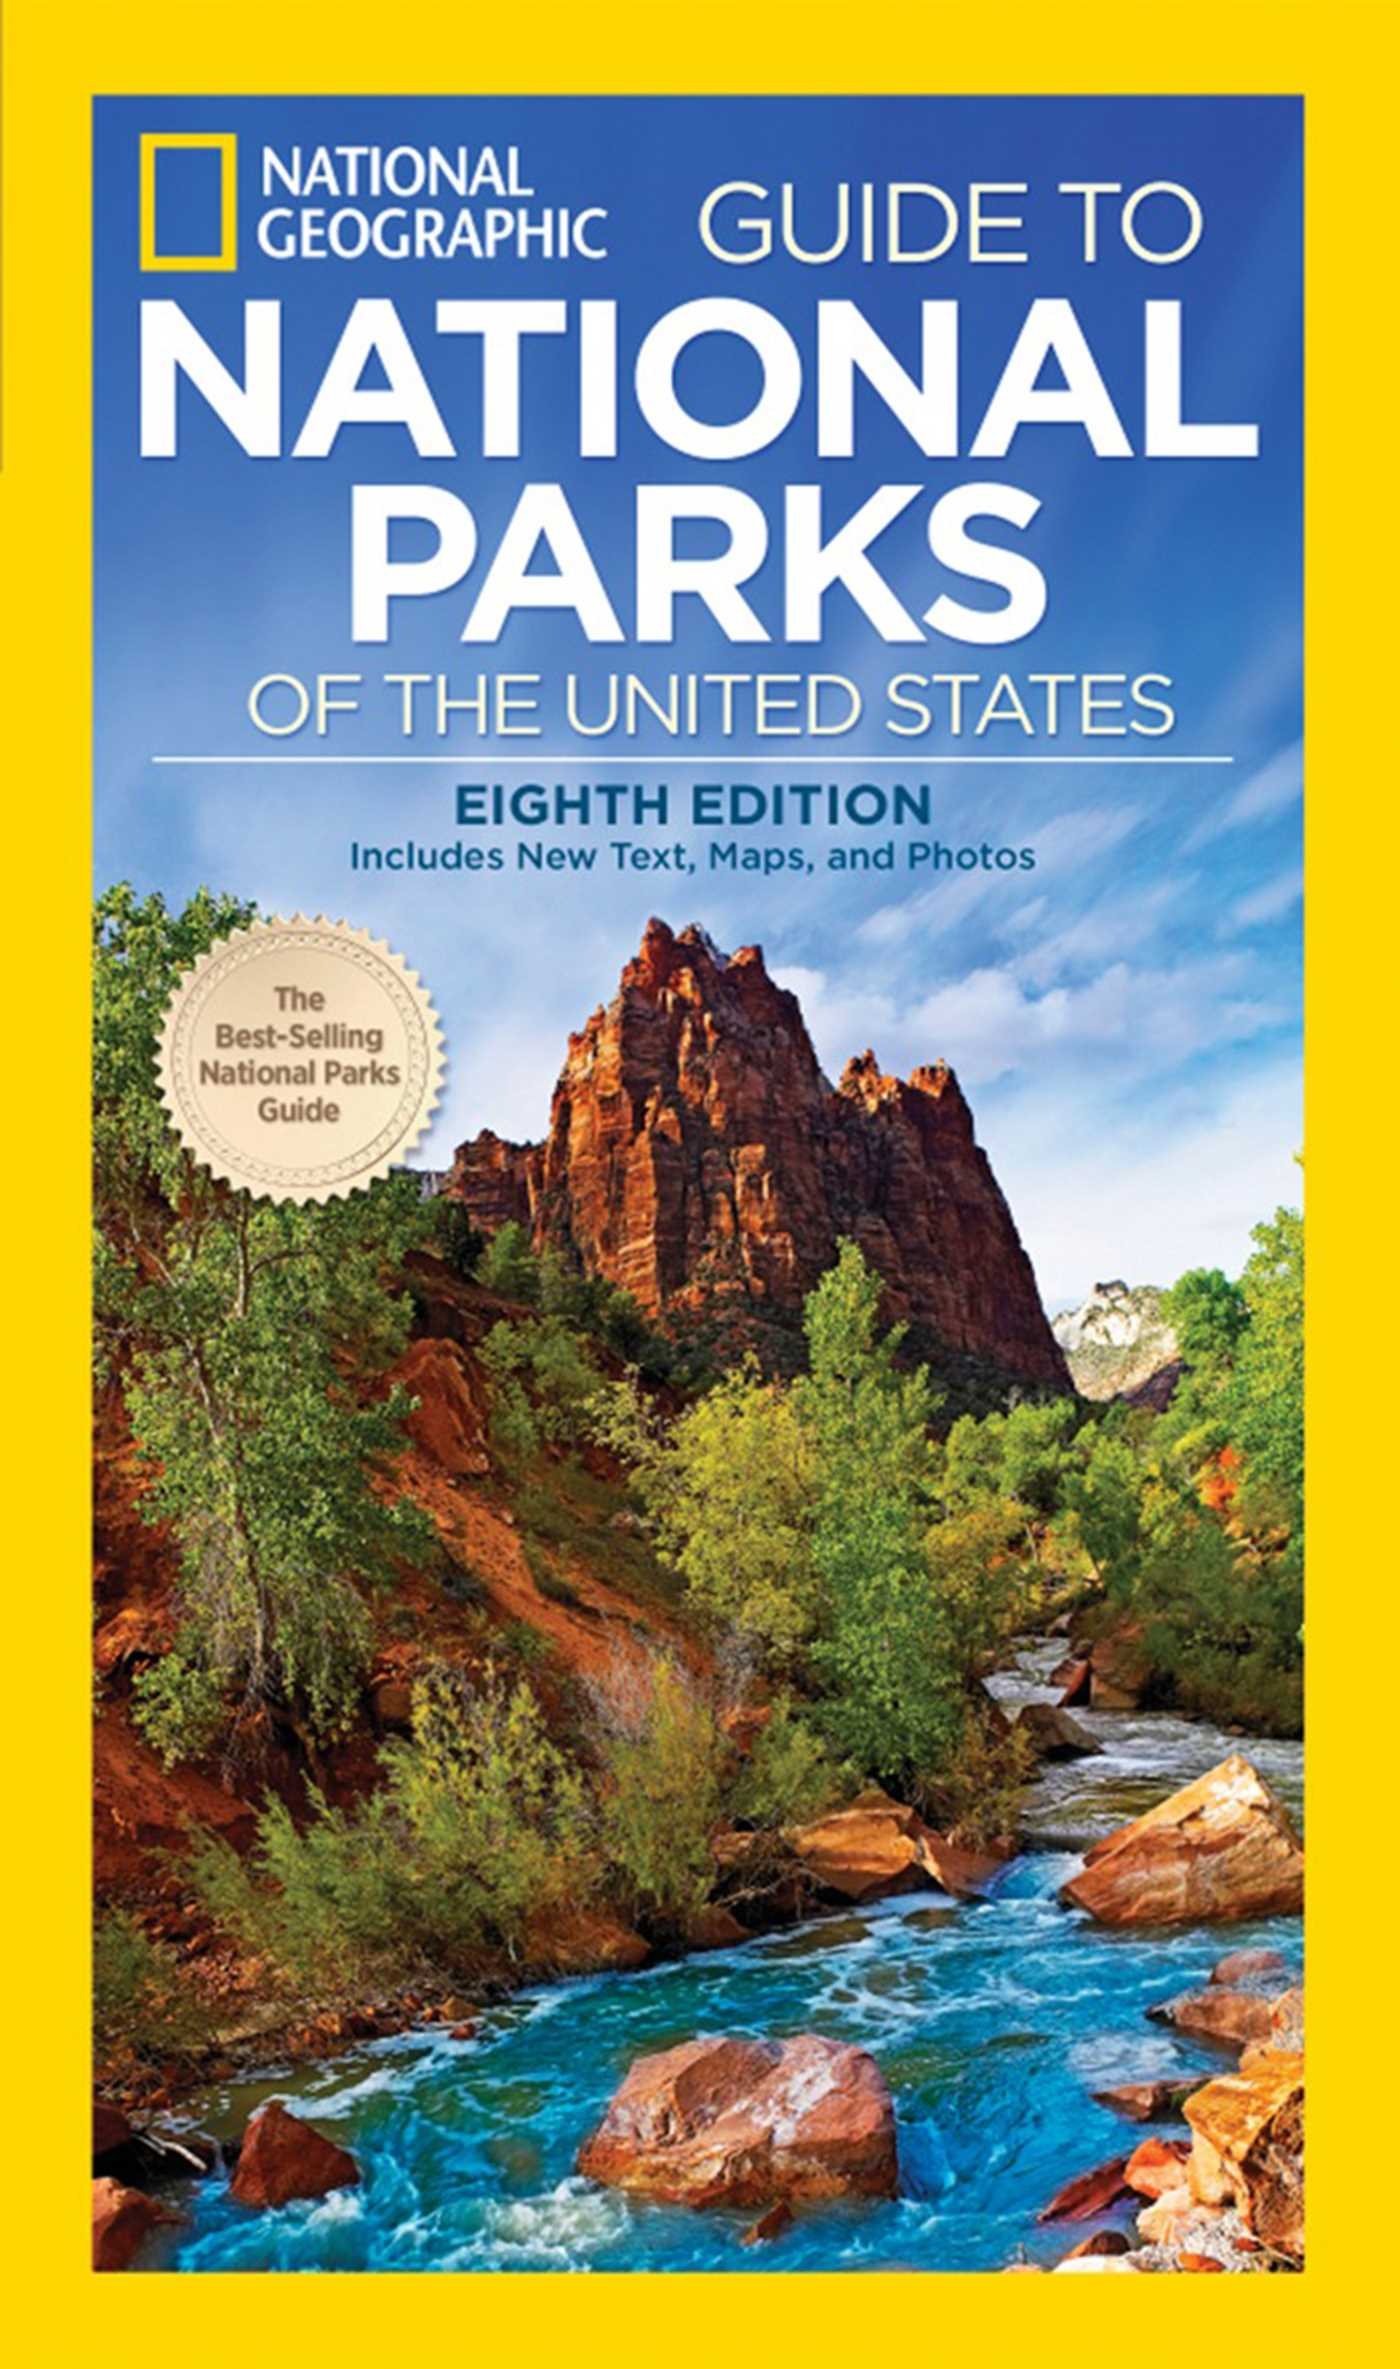 National Geographic Guide to National Parks of the United States ...